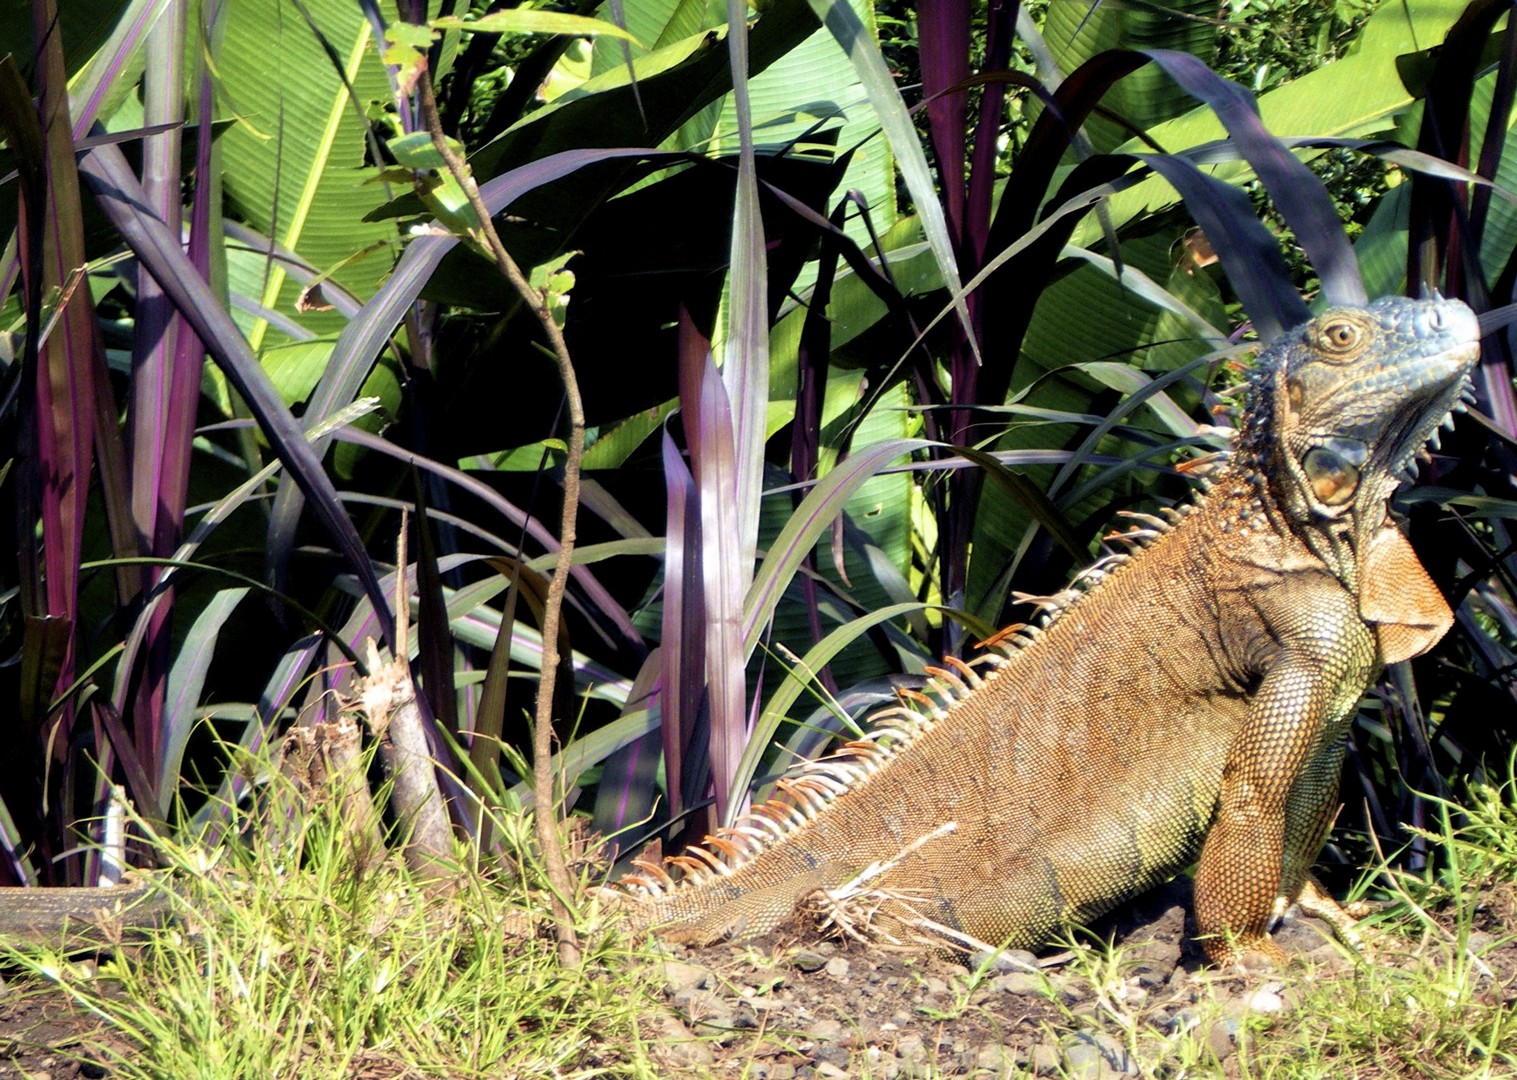 iguana-wildlife-costa-rica-guided-family-cycling-holiday.jpg - Costa Rica - Volcanoes and Valleys - Guided Family Cycling Holiday - Family Cycling